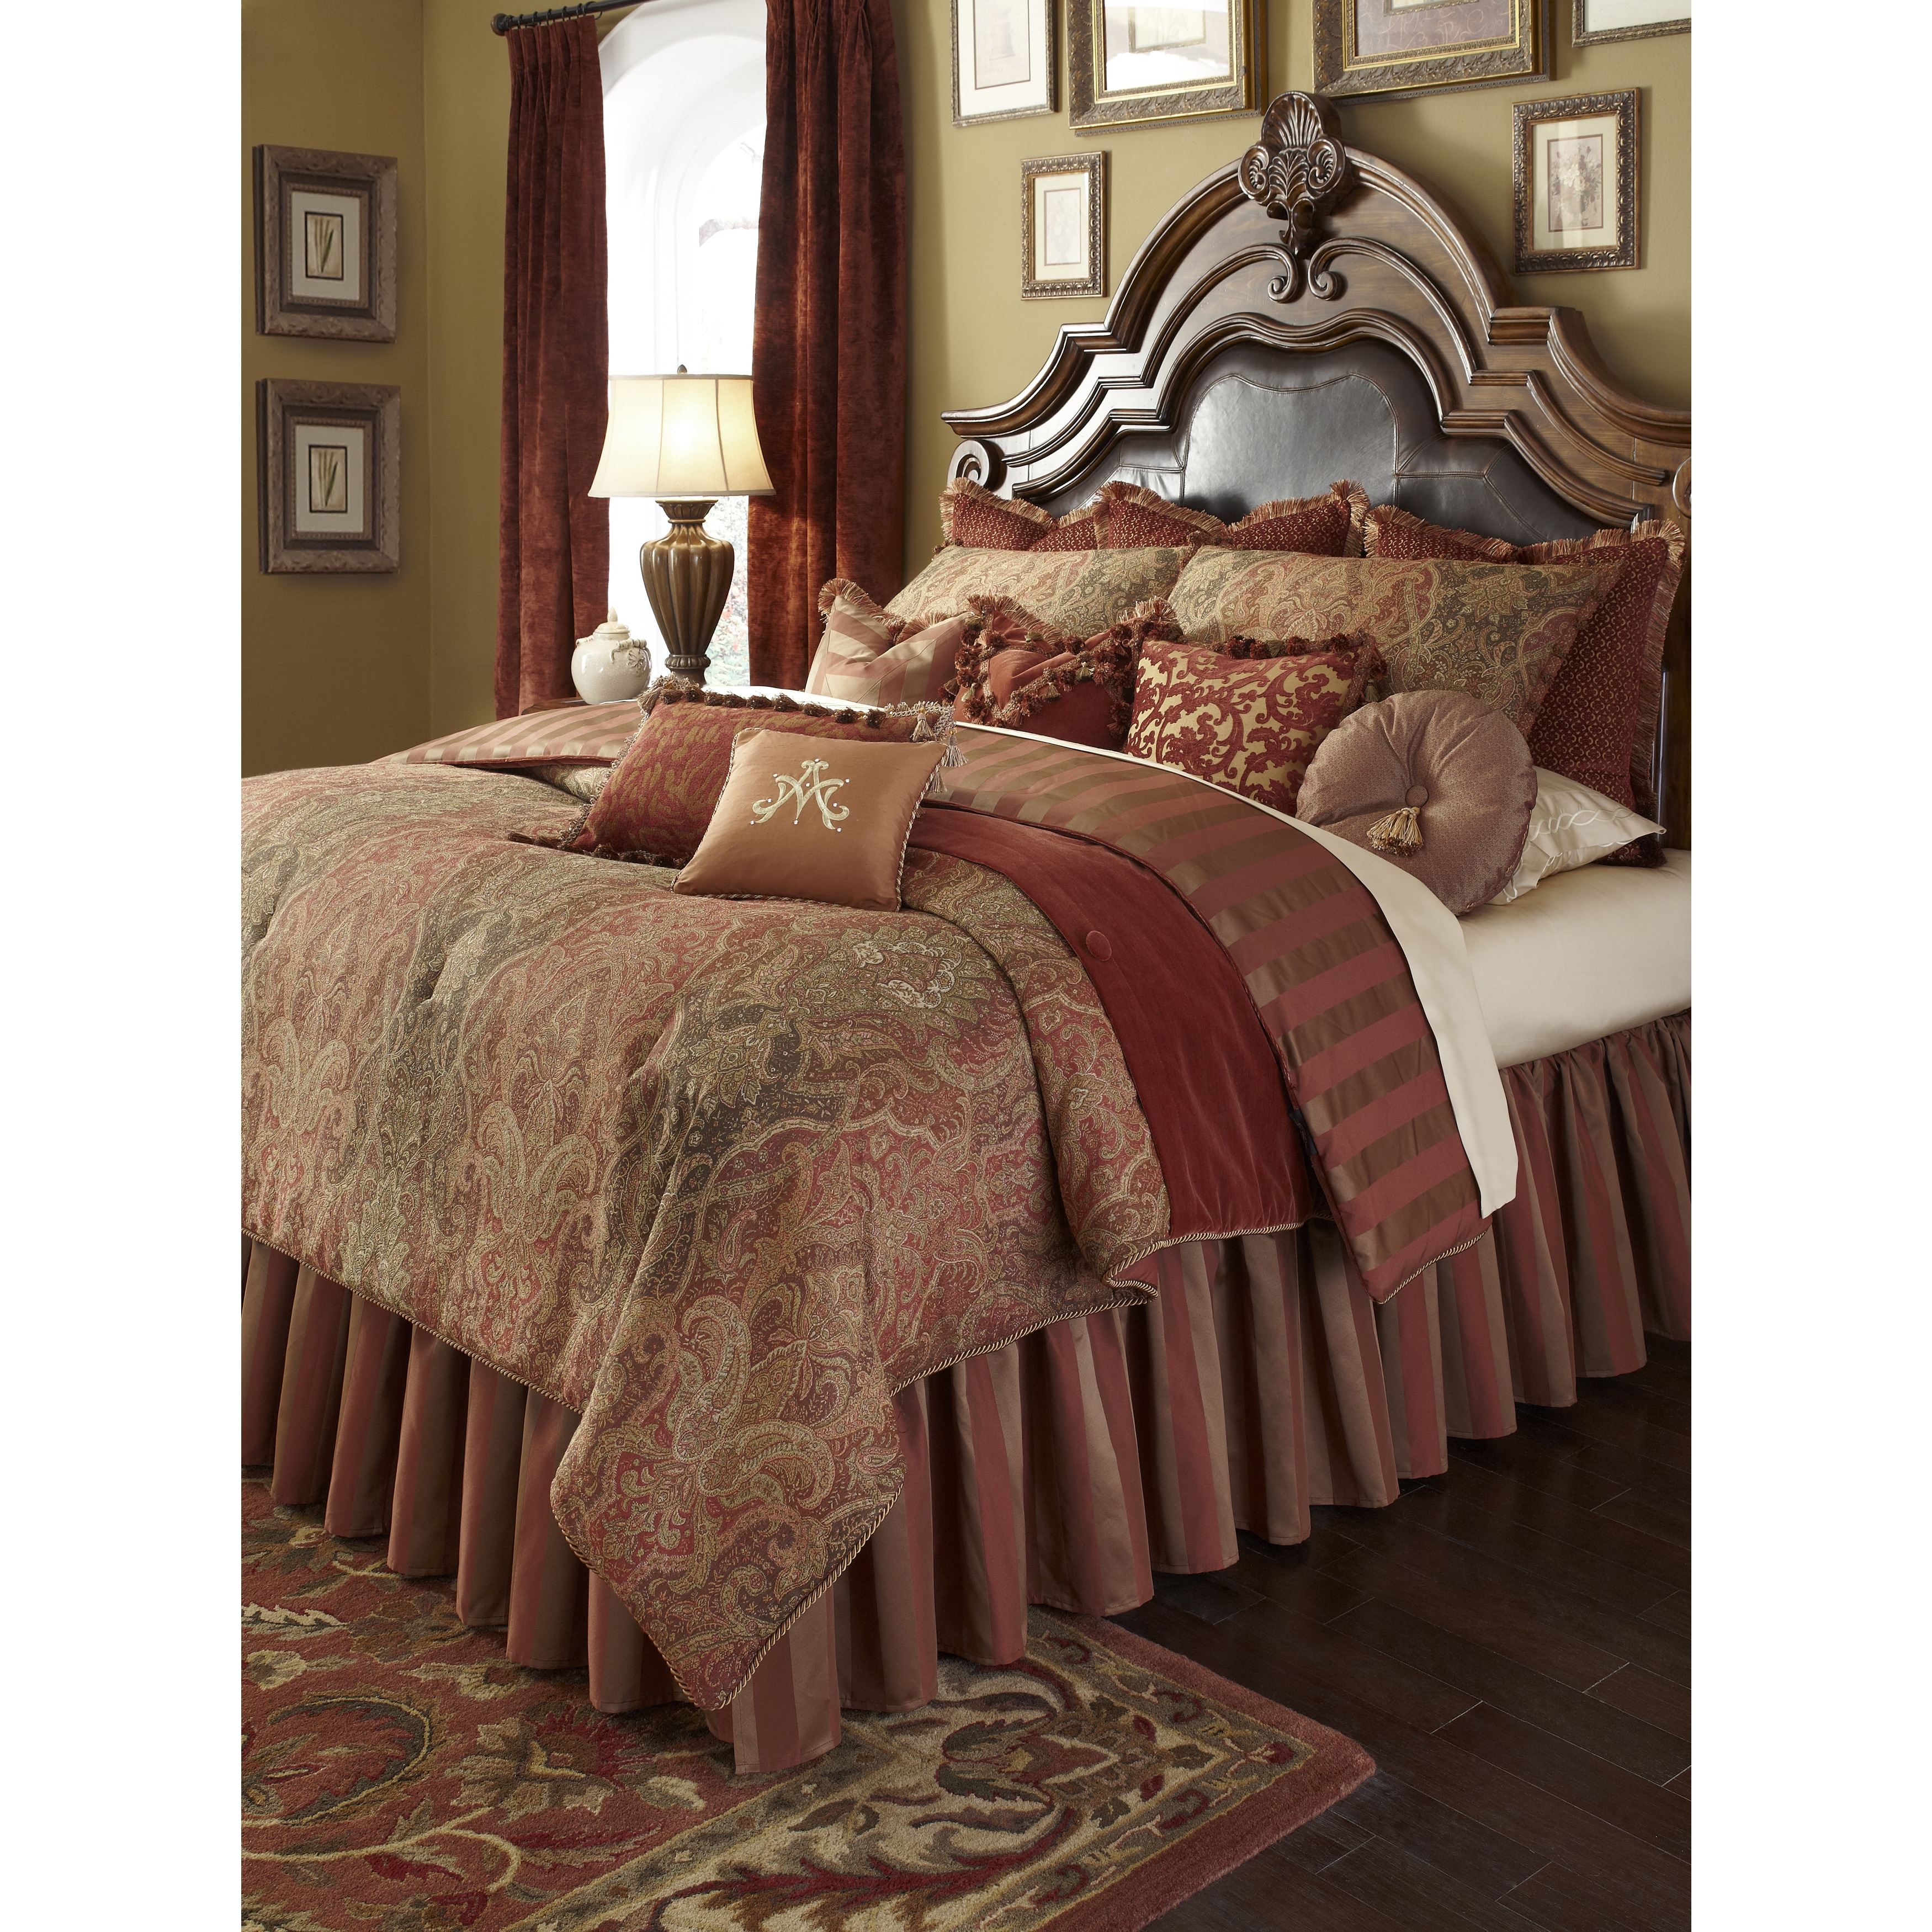 amini overstock set bedding shipping coverlet today free michael bed ashworth bath product duvet